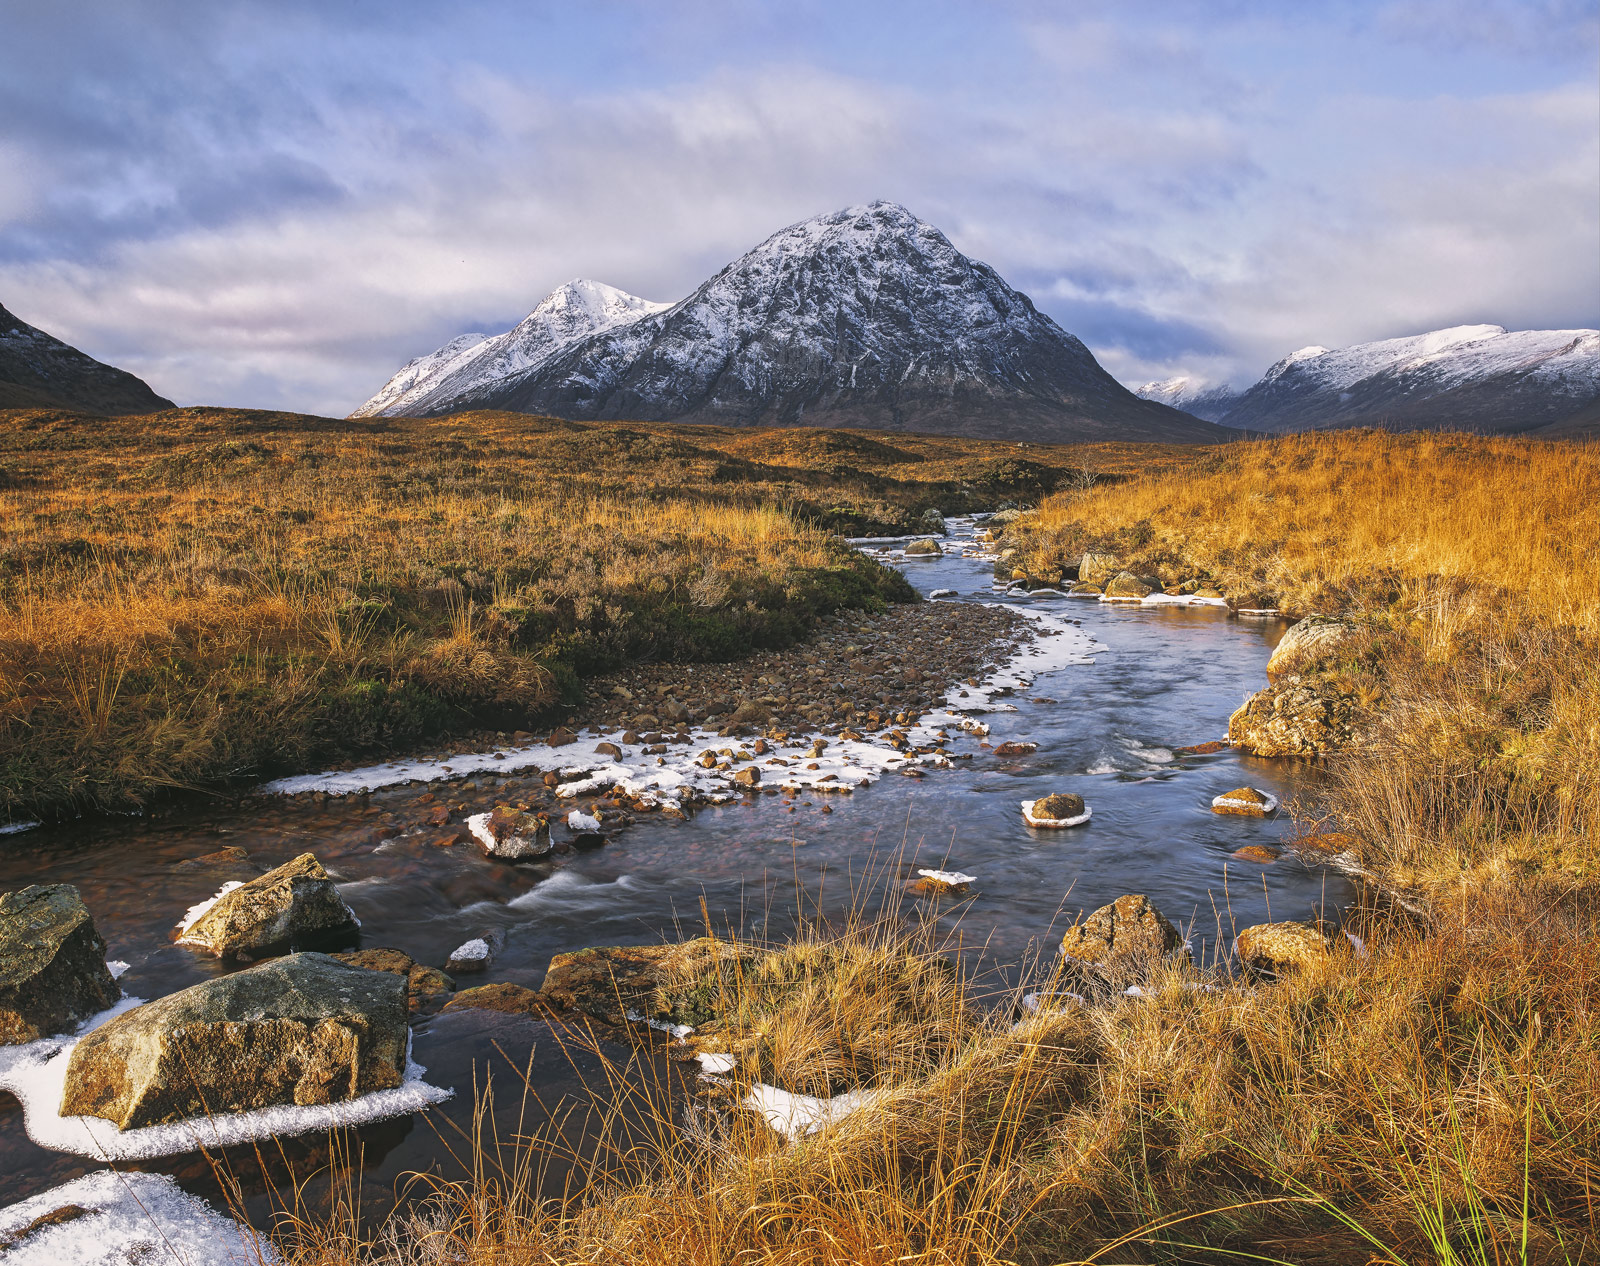 A rim of winter frost rings the rocks and the banks of a shallow tumbling stream that obligingly points to the pyramidial peak...